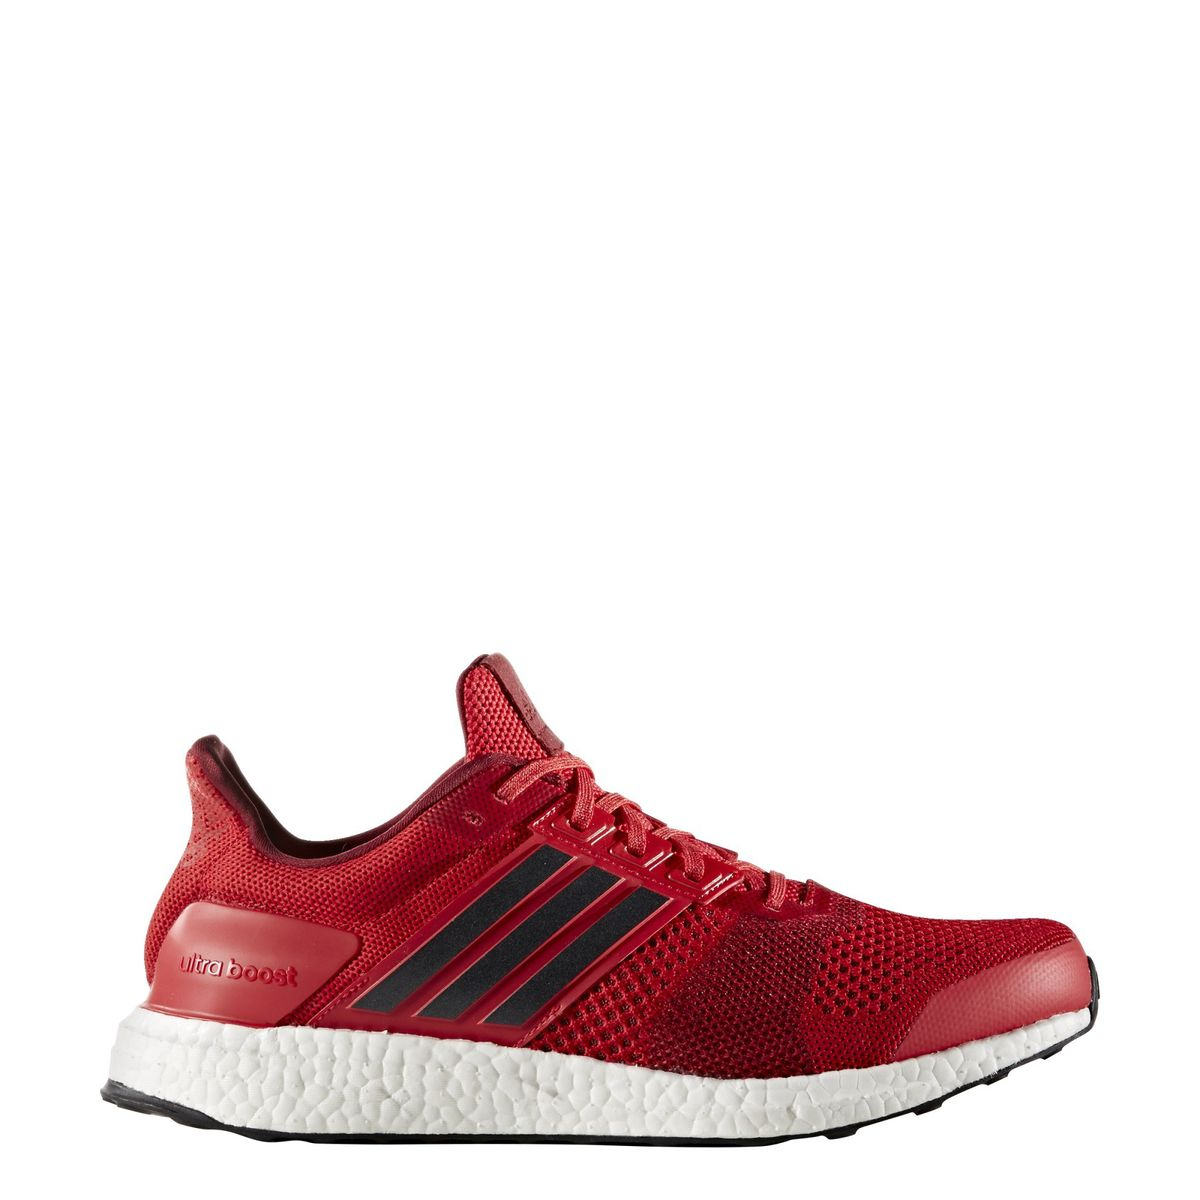 adidas shoes online shopping south africa